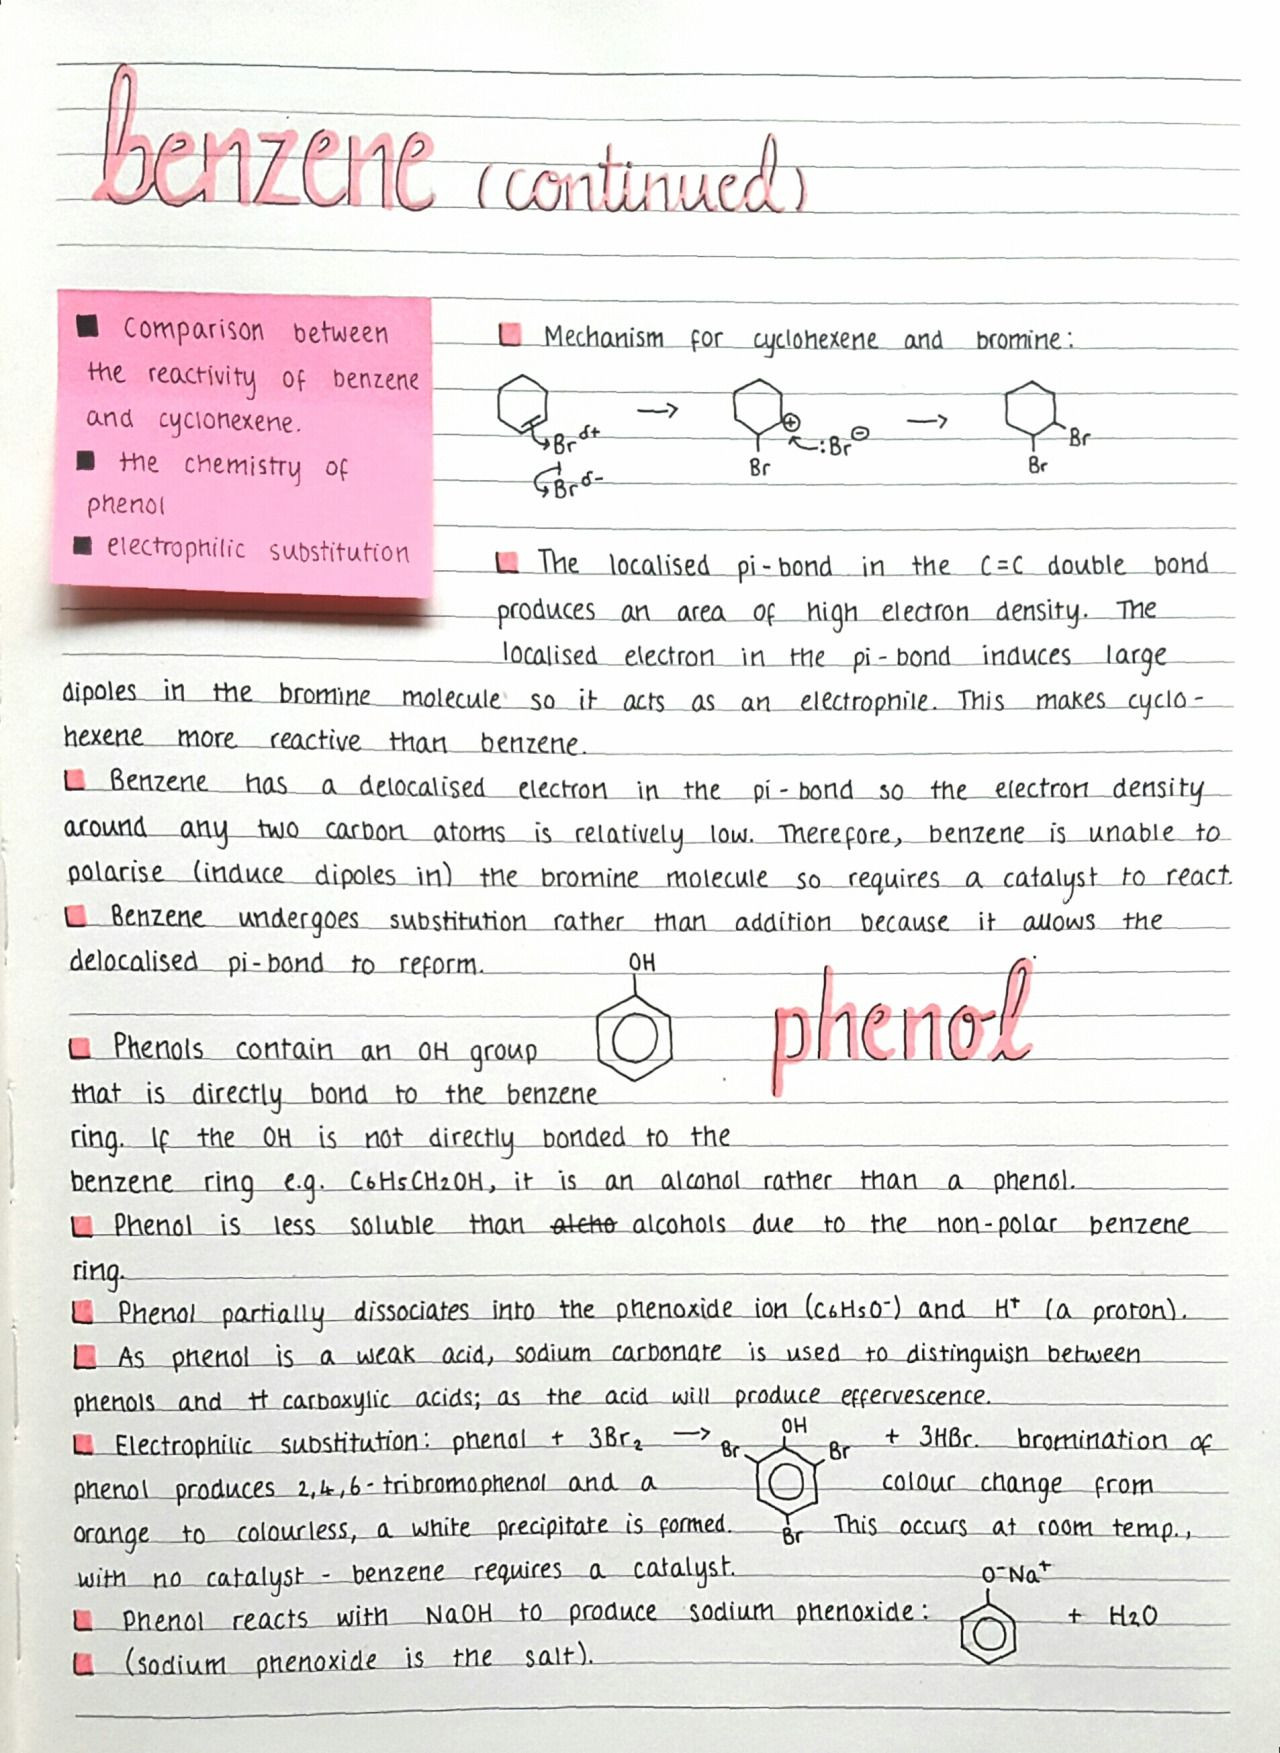 Bill Nye Chemical Reactions Worksheet More Notes for organic Chemistry